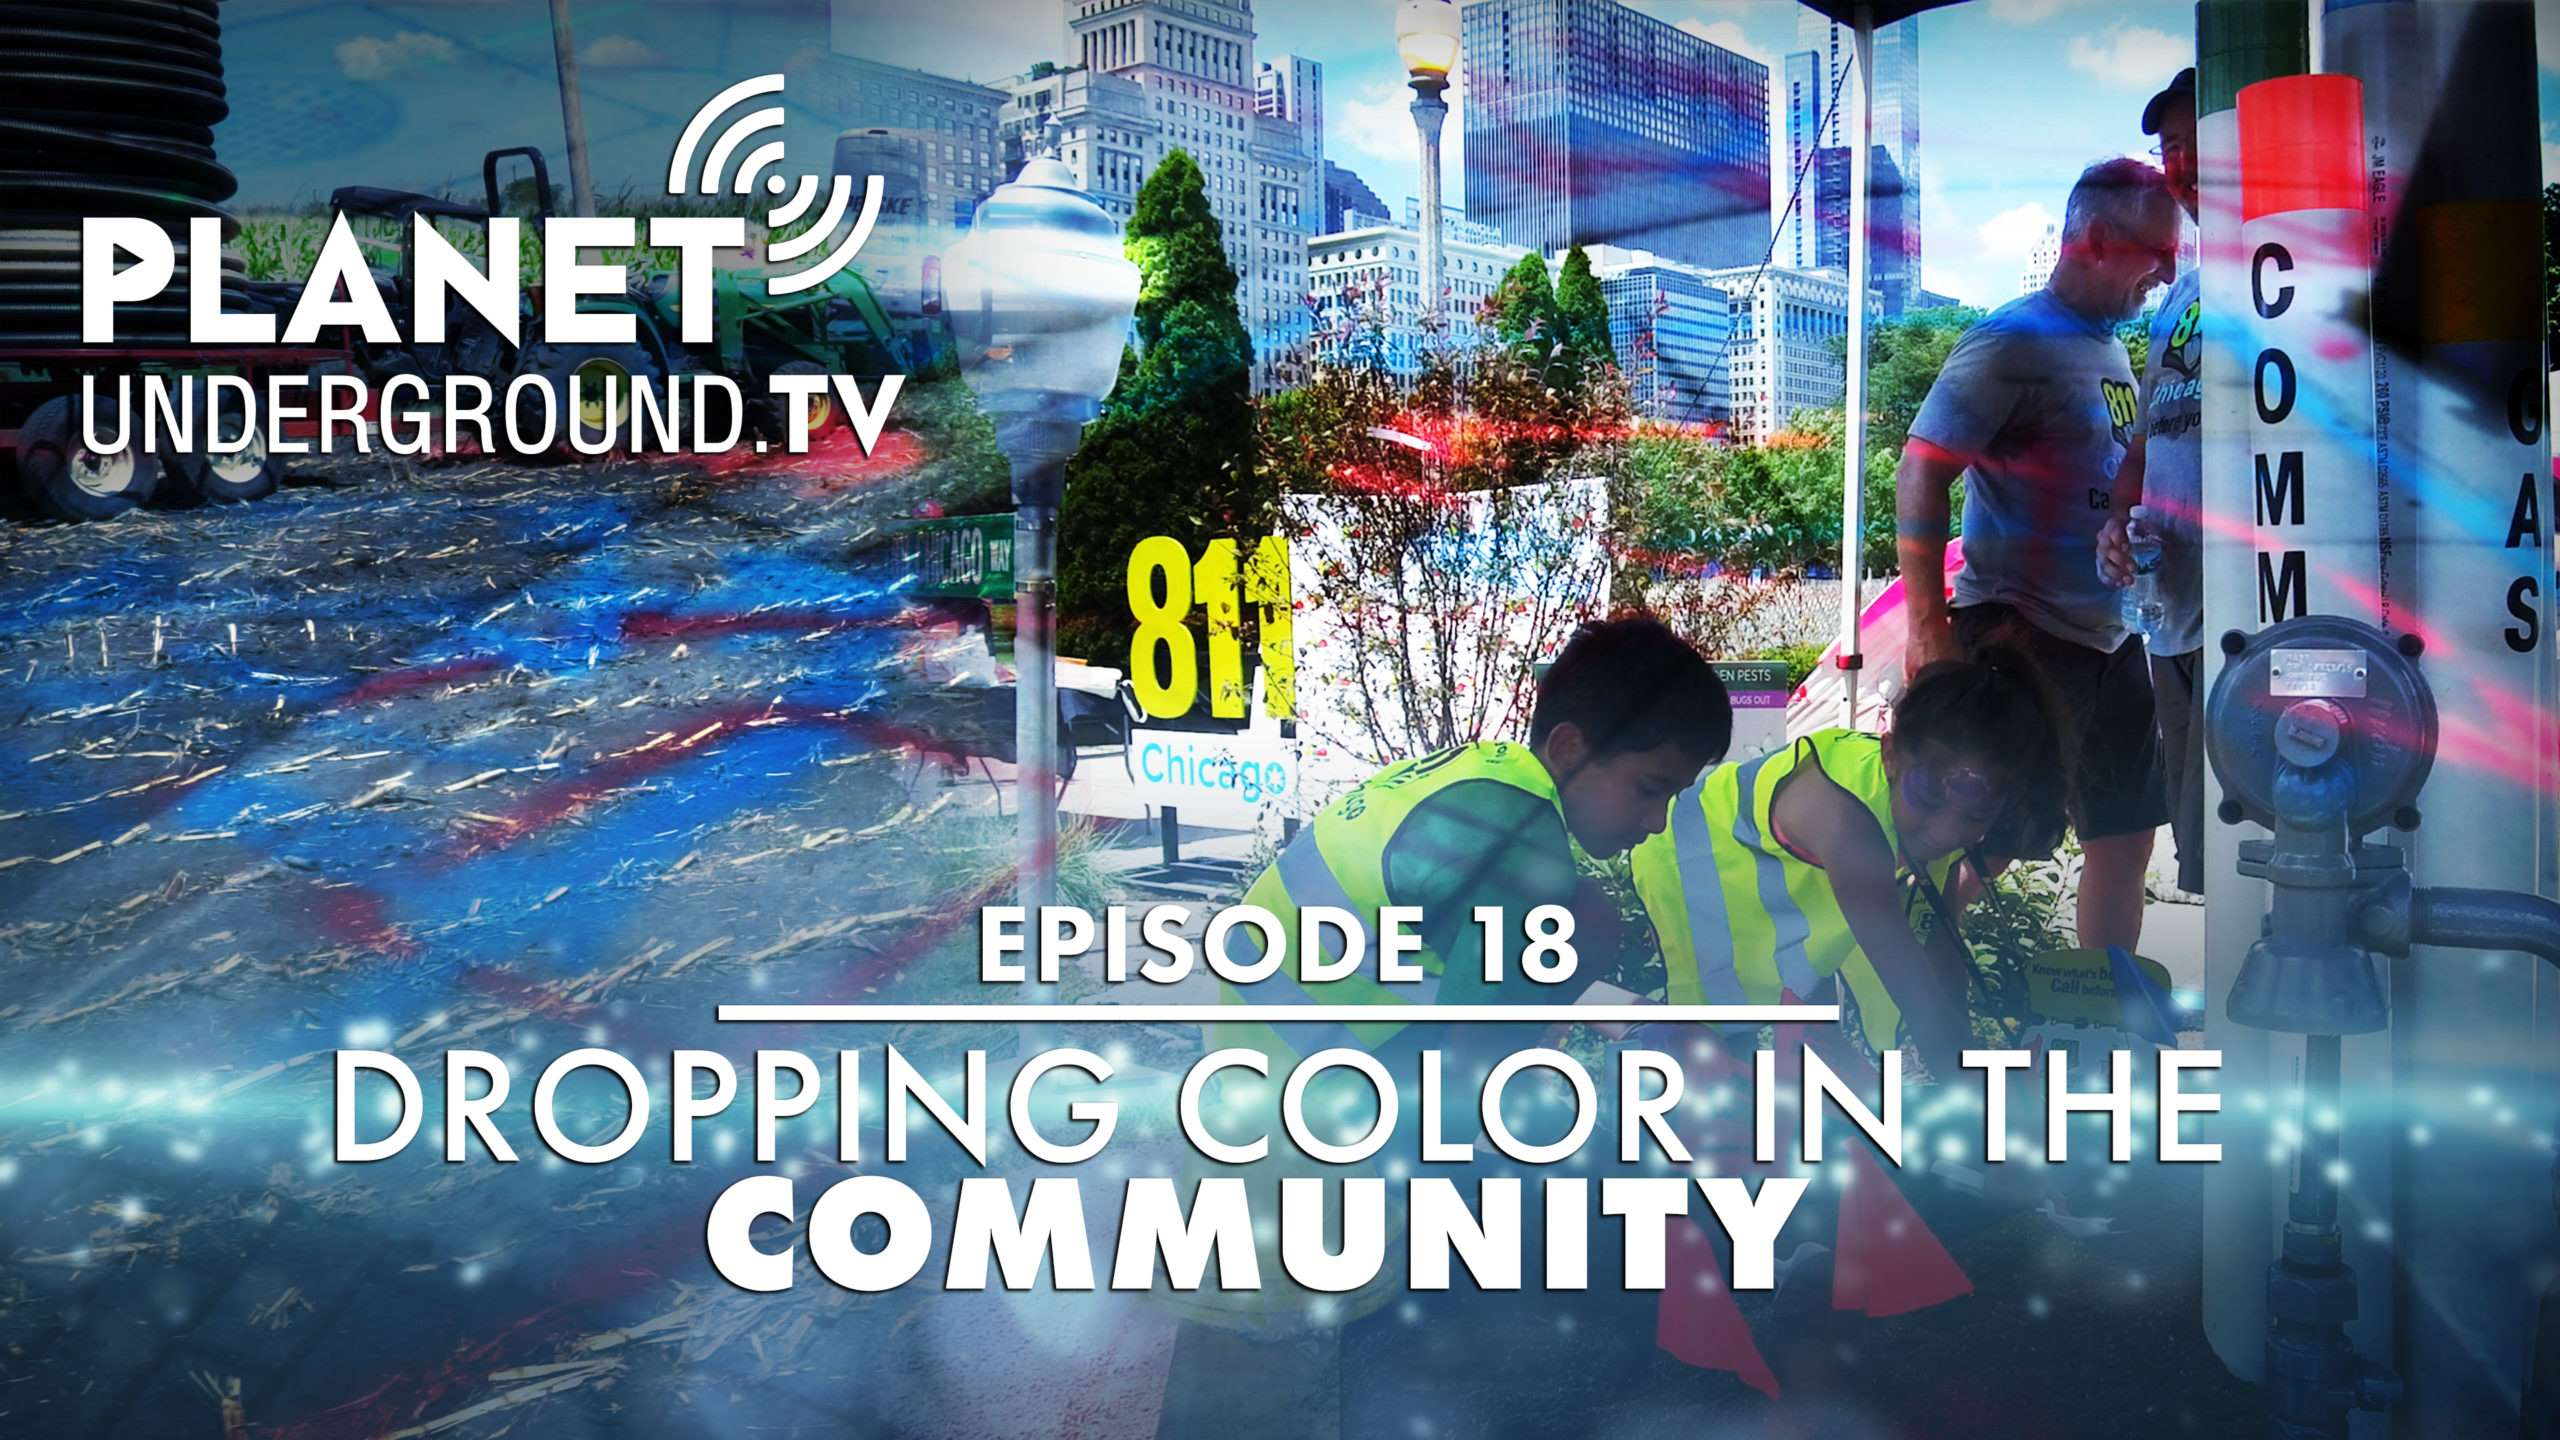 Episode 18: Dropping Color in the Community